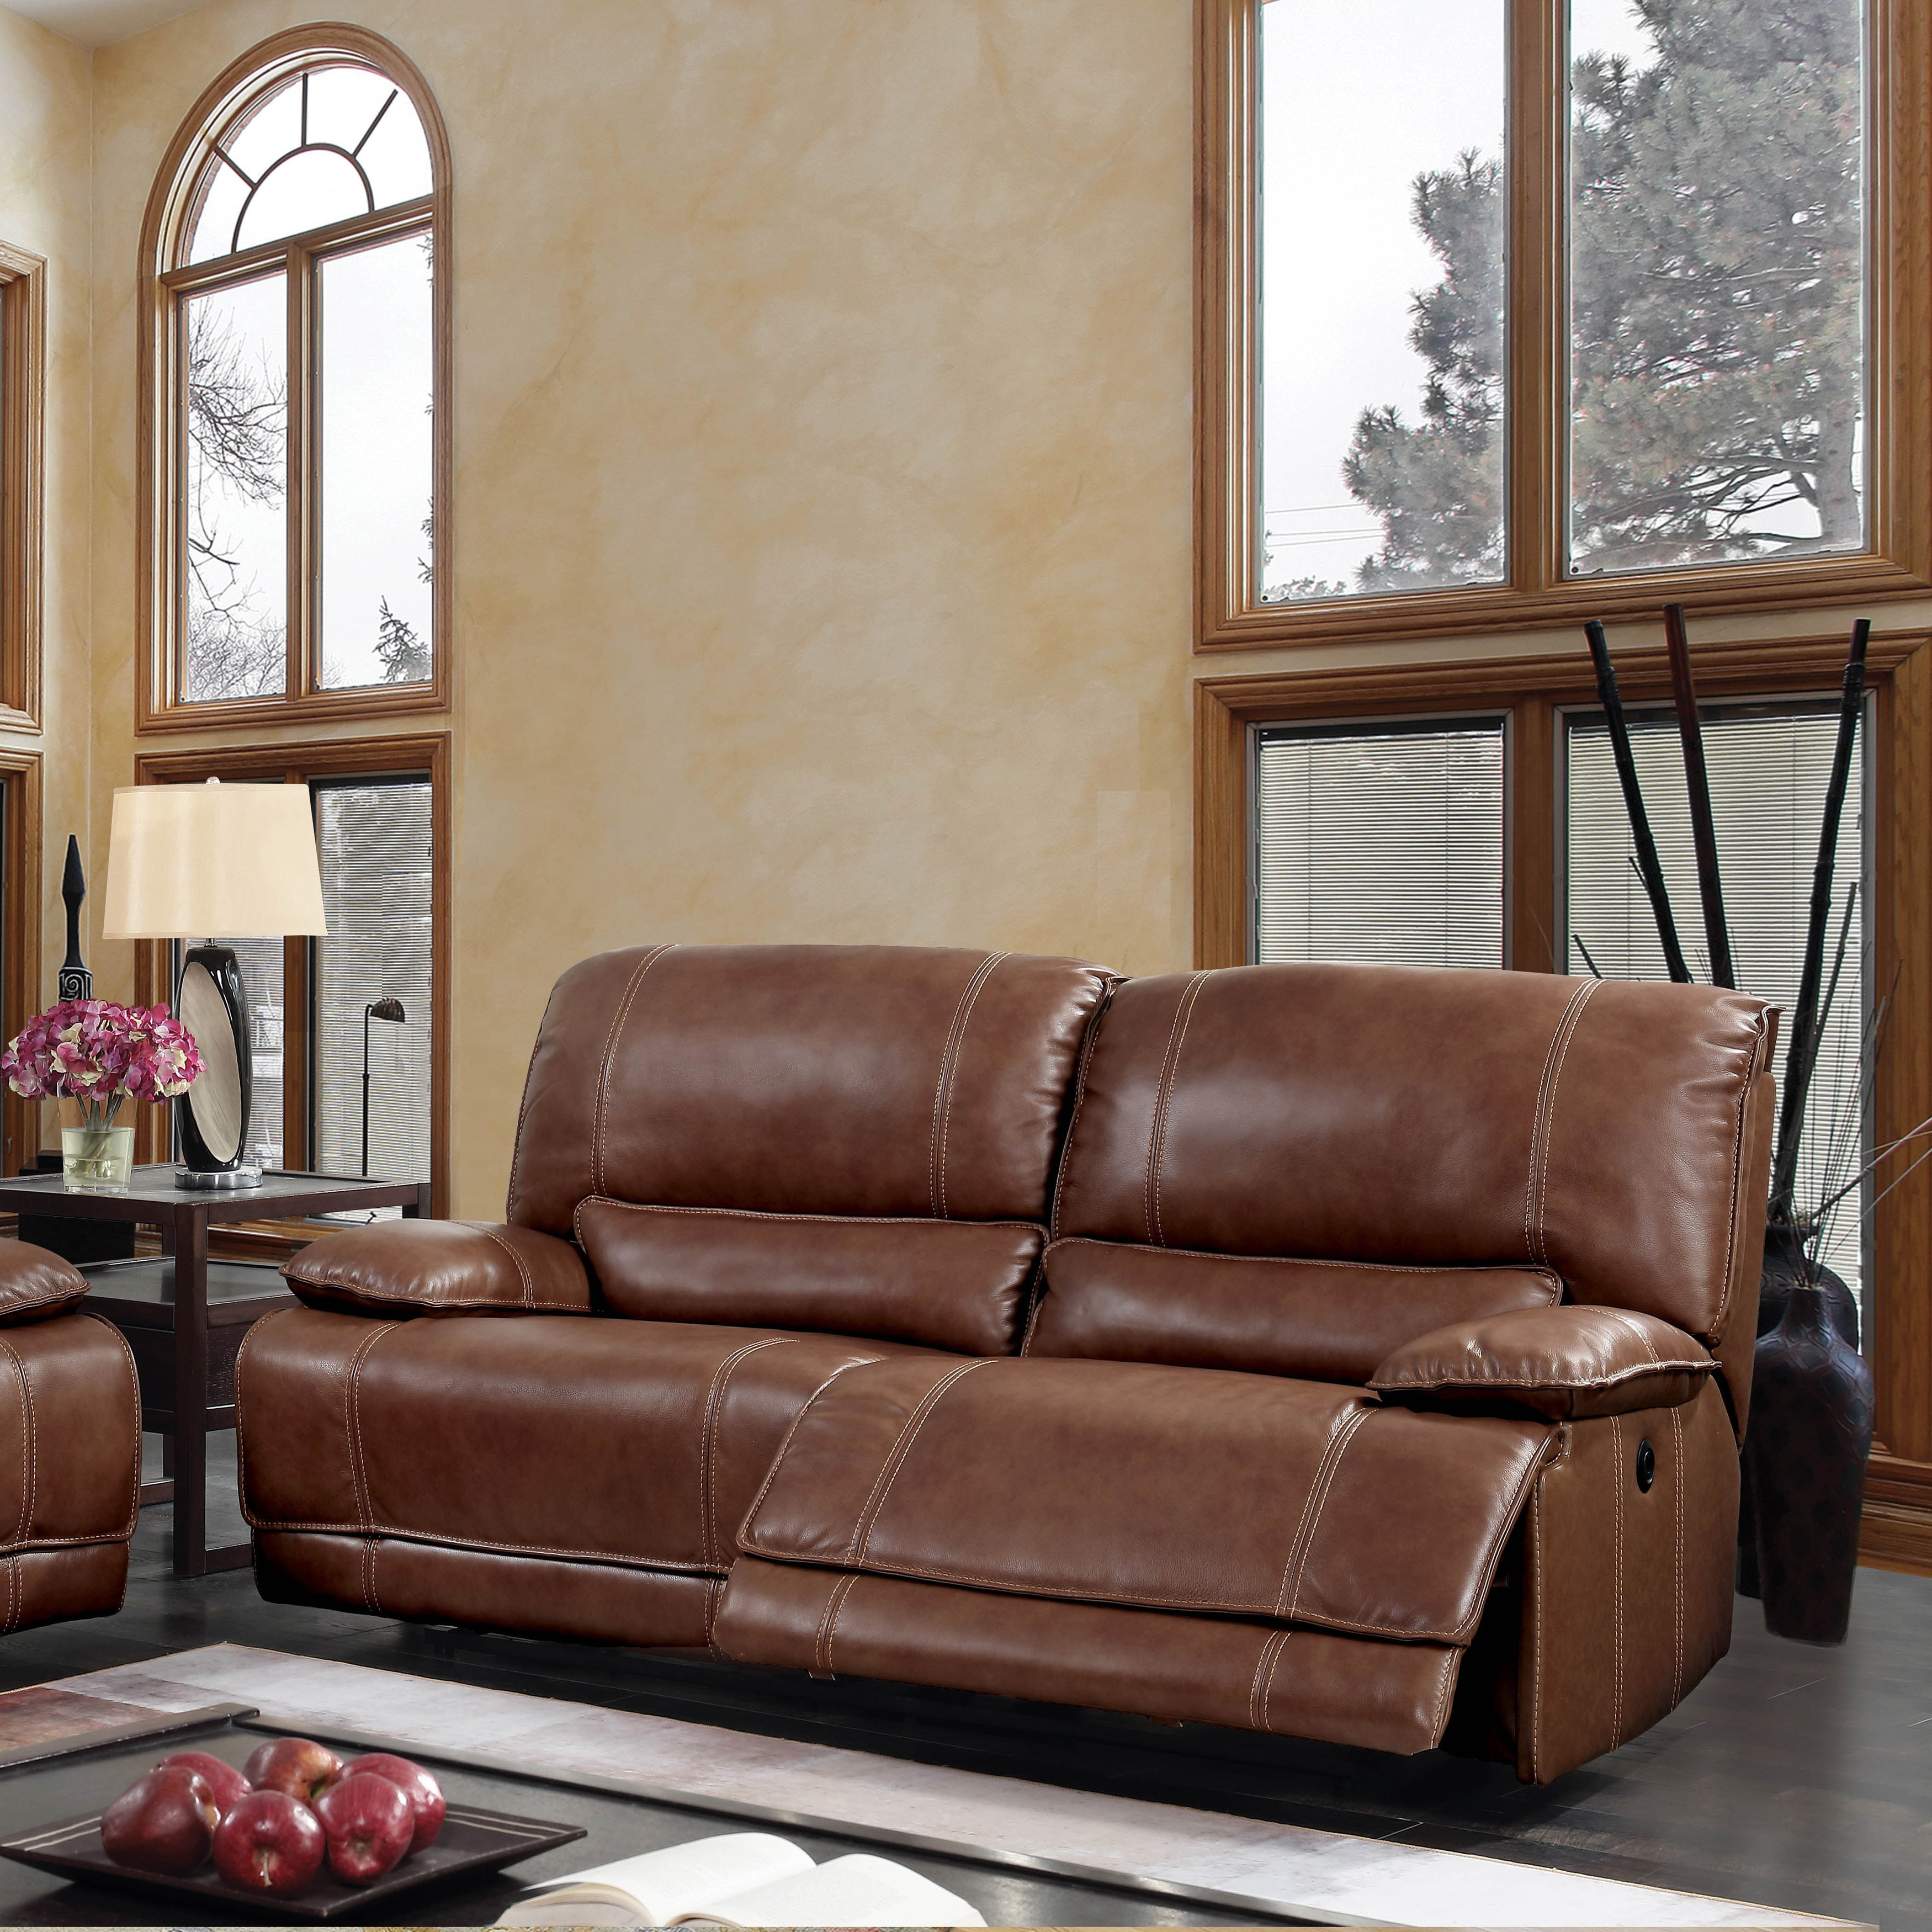 Shop Furniture Of America Sierra Brown Leather Usb Power Assist Sofa In Well Known Sierra Foam Ii Oversized Sofa Chairs (Gallery 14 of 20)